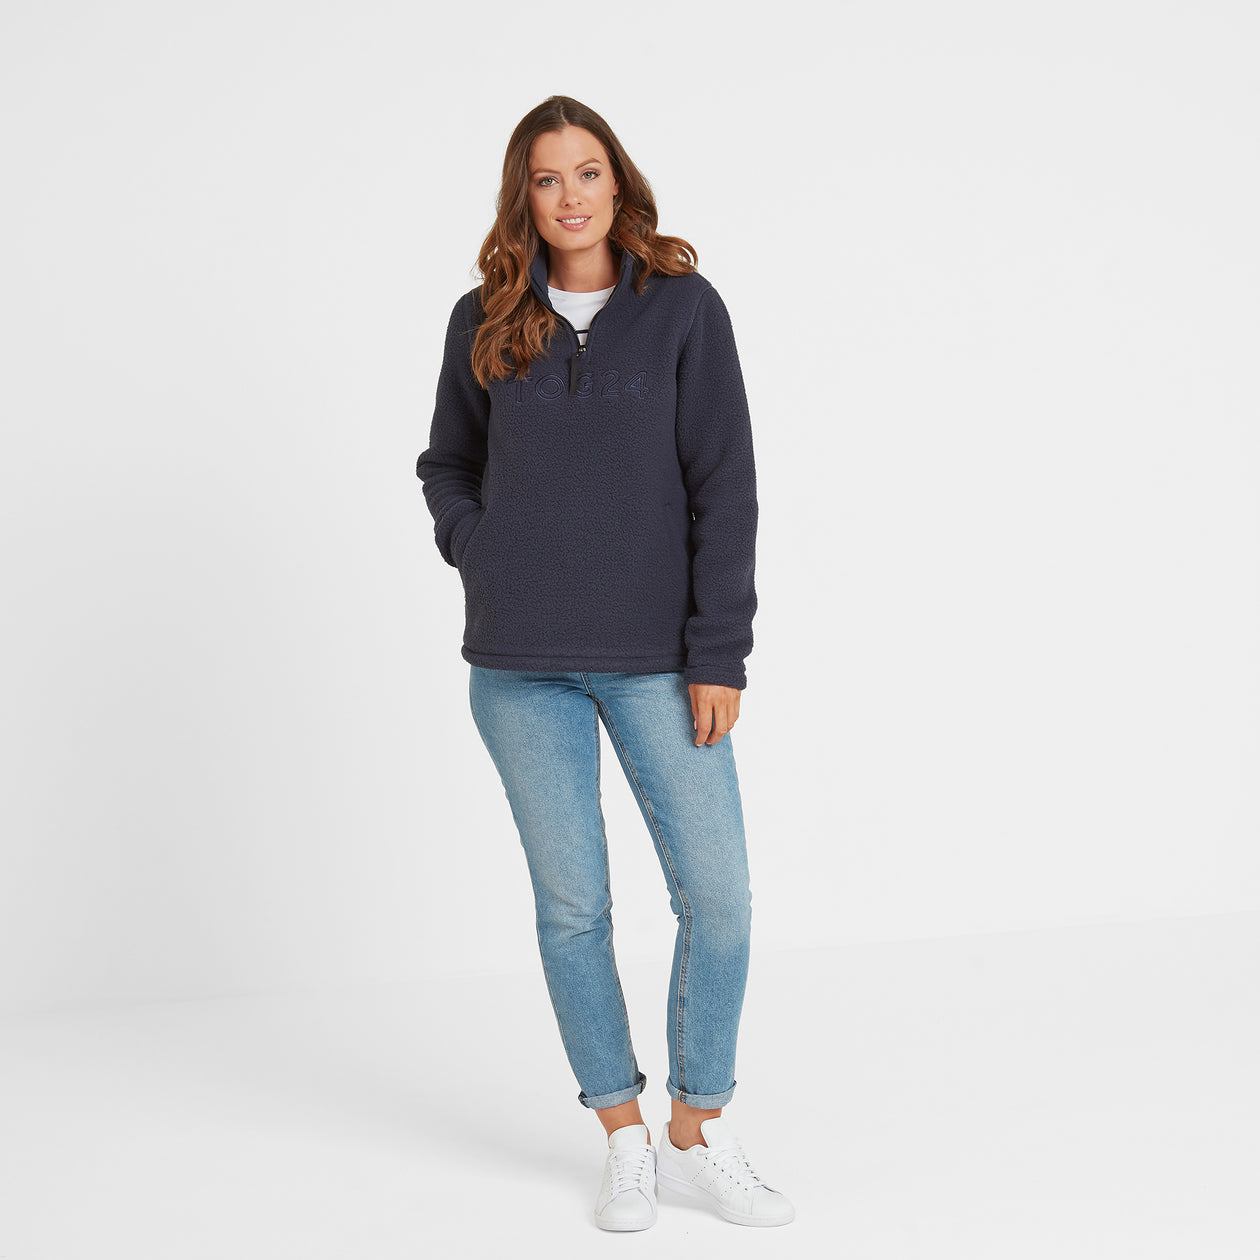 Kirkstall Womens Fleece Zip Neck - Dark Indigo image 4